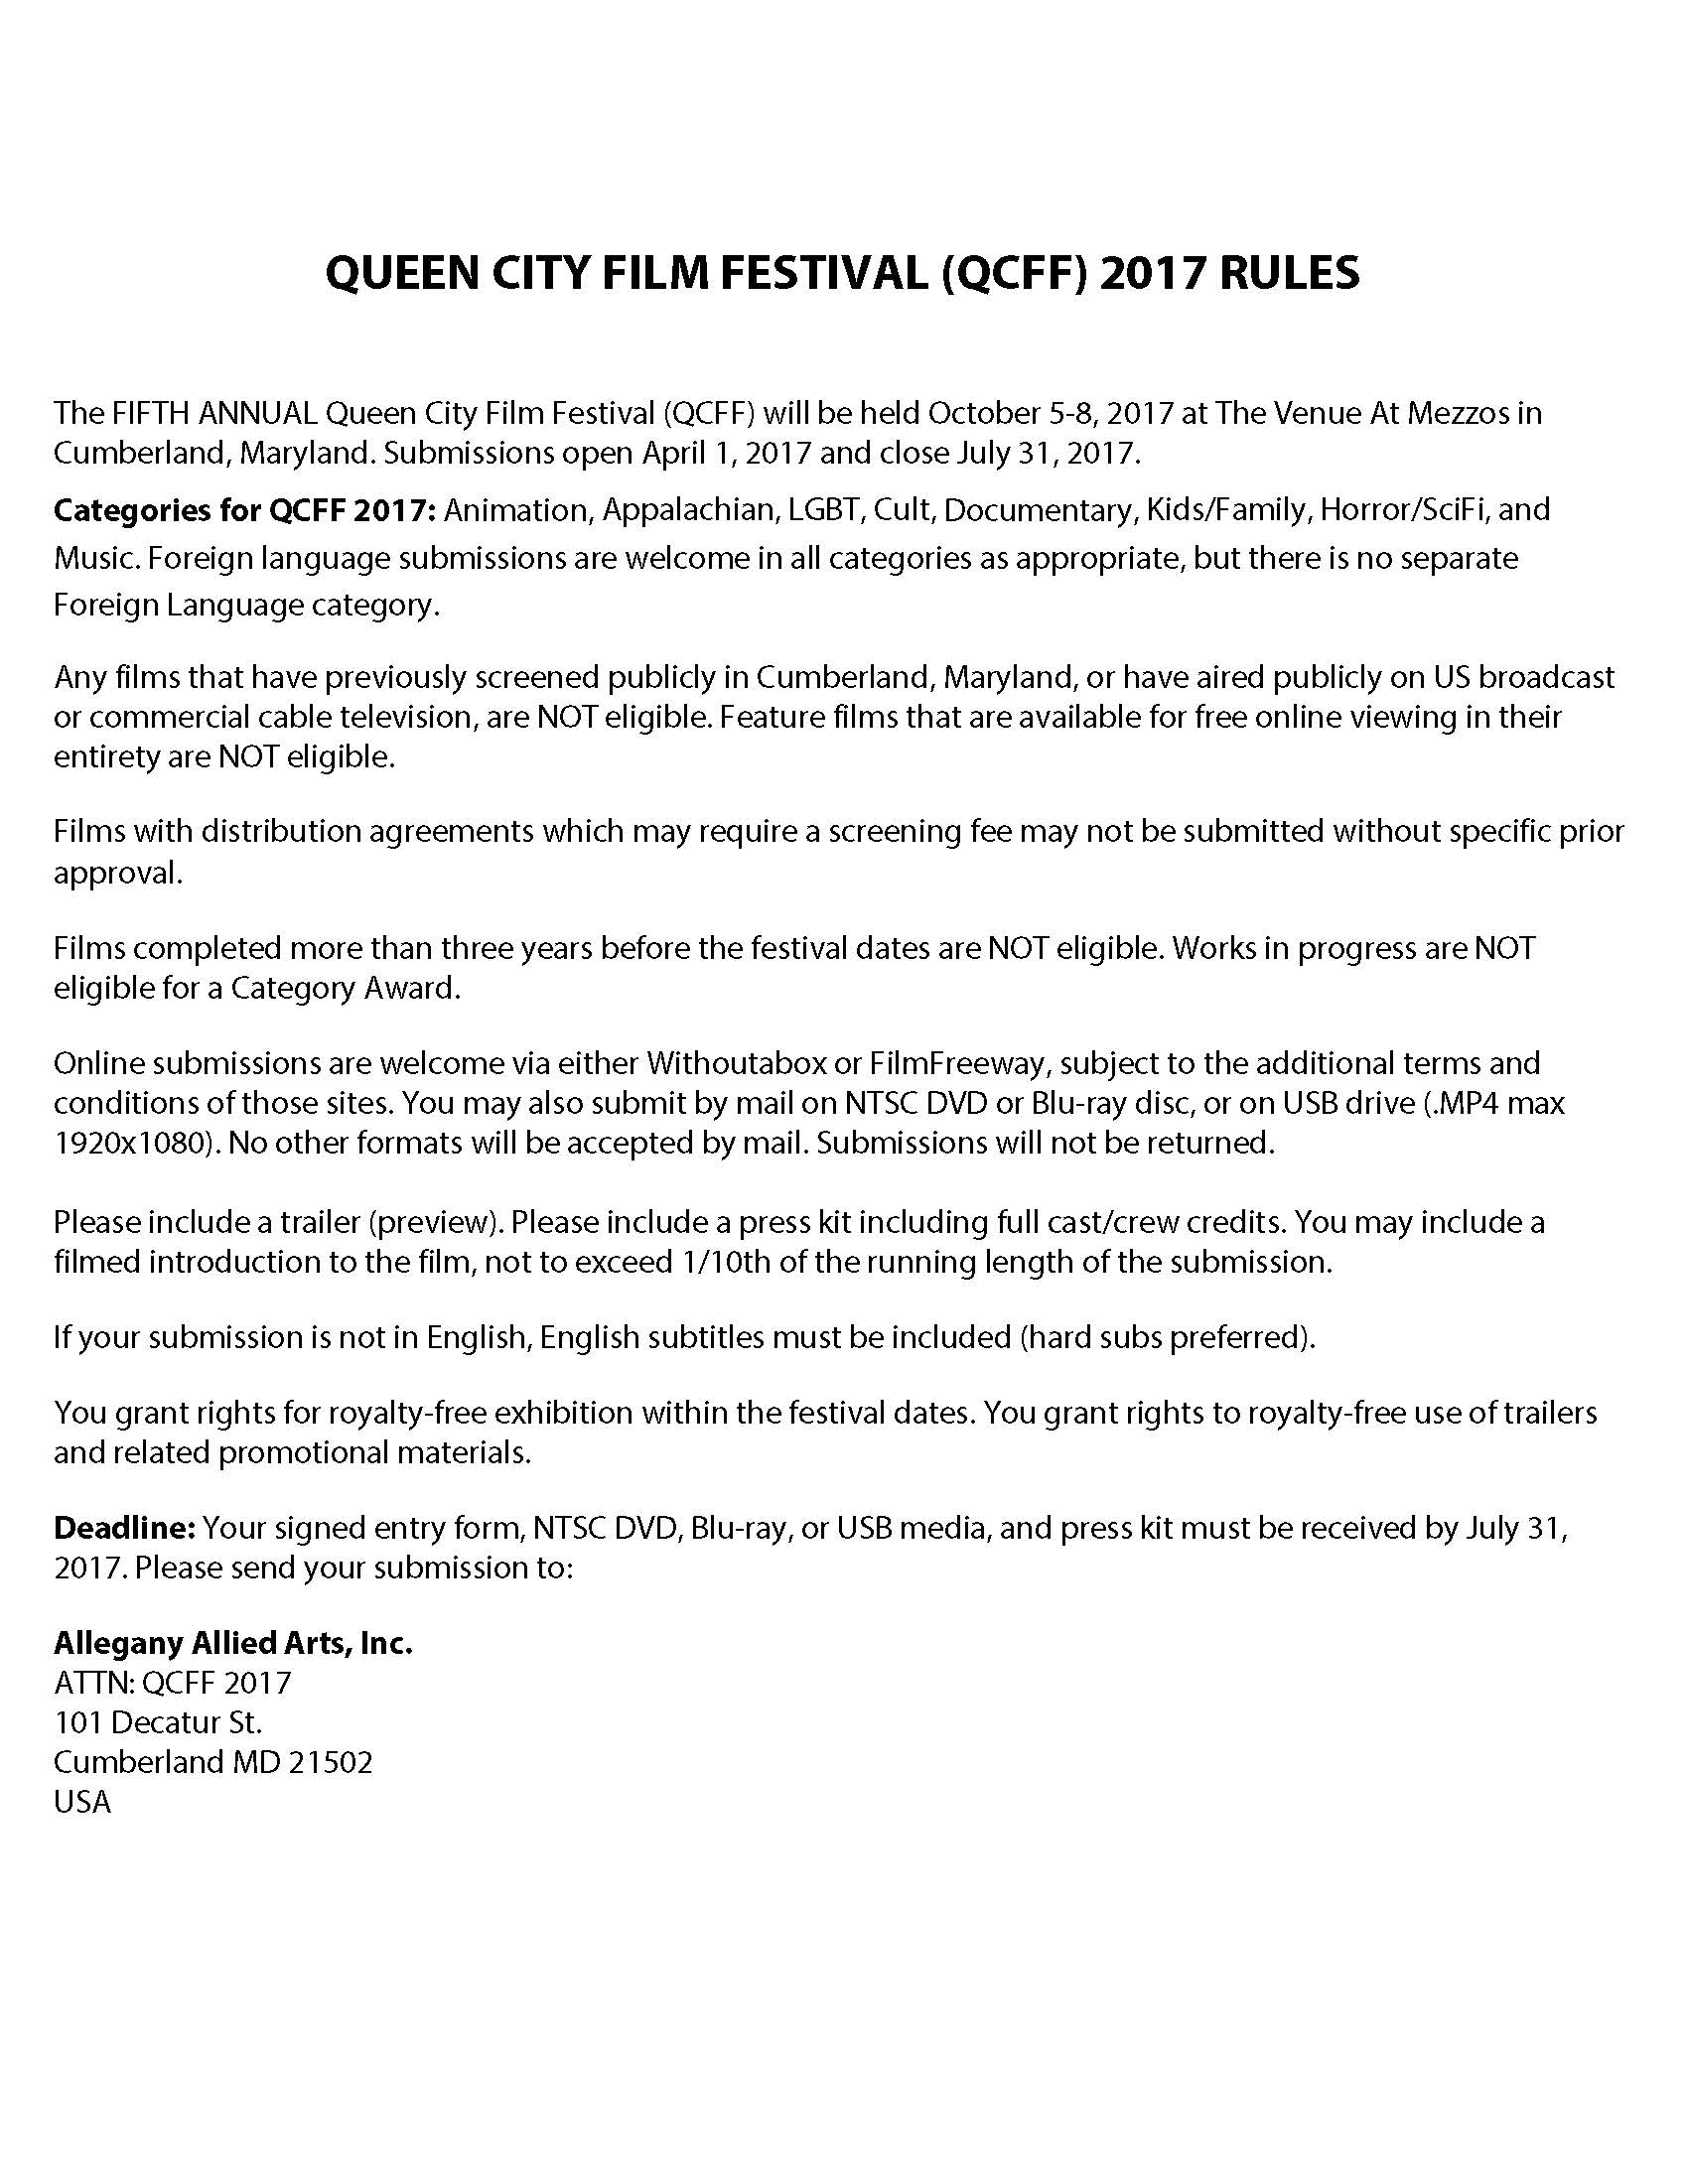 Qcff allegany allied arts inc pdf copy of the qcff 2017 rules buycottarizona